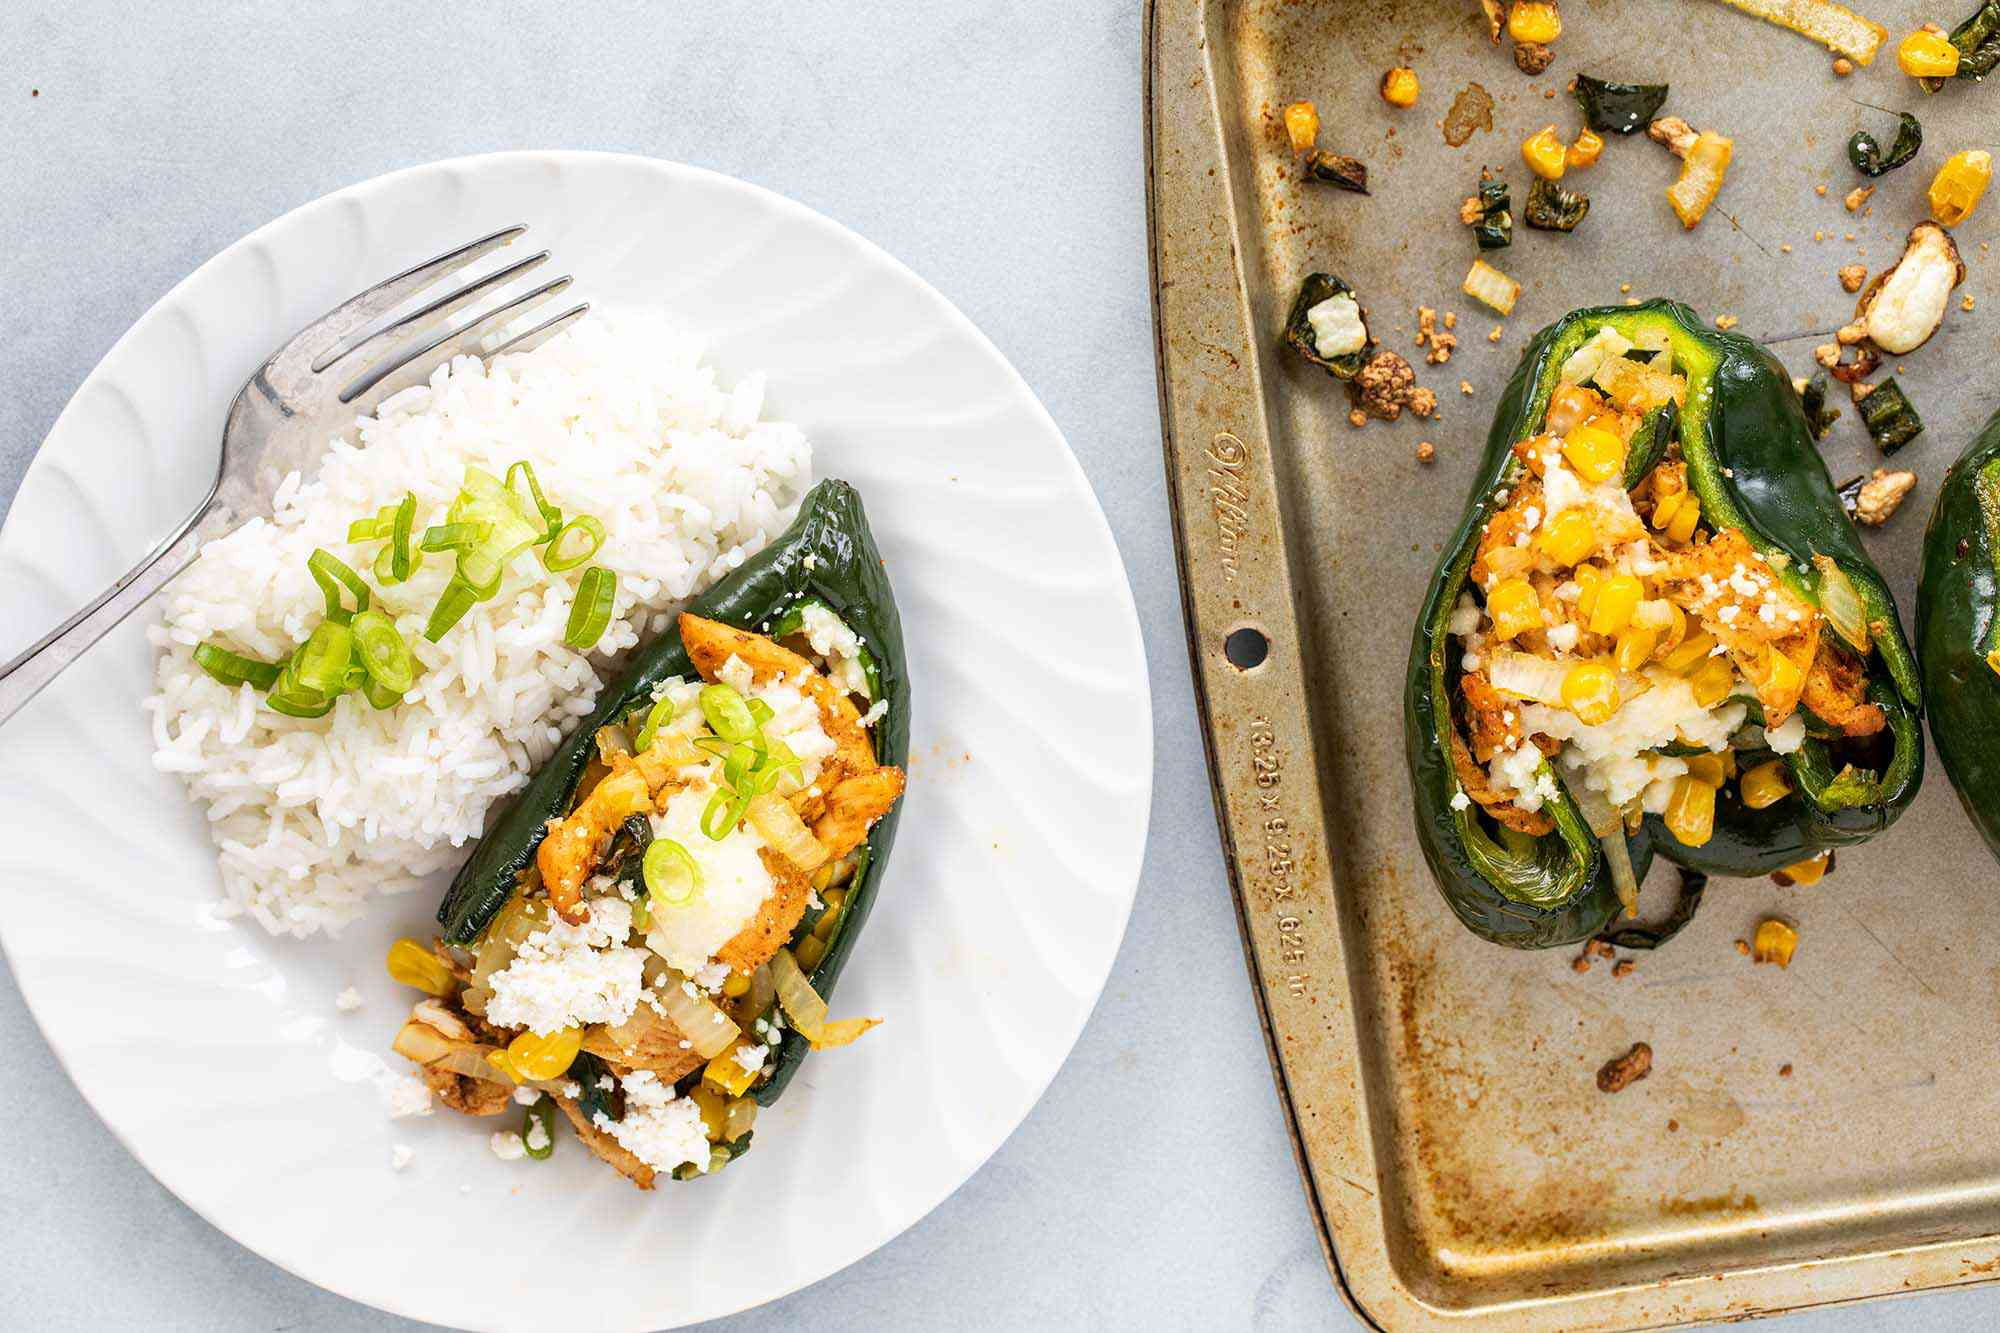 Chicken stuffed peppers on a plate with a side of rice. A baking sheet with additional peppers is to the right.